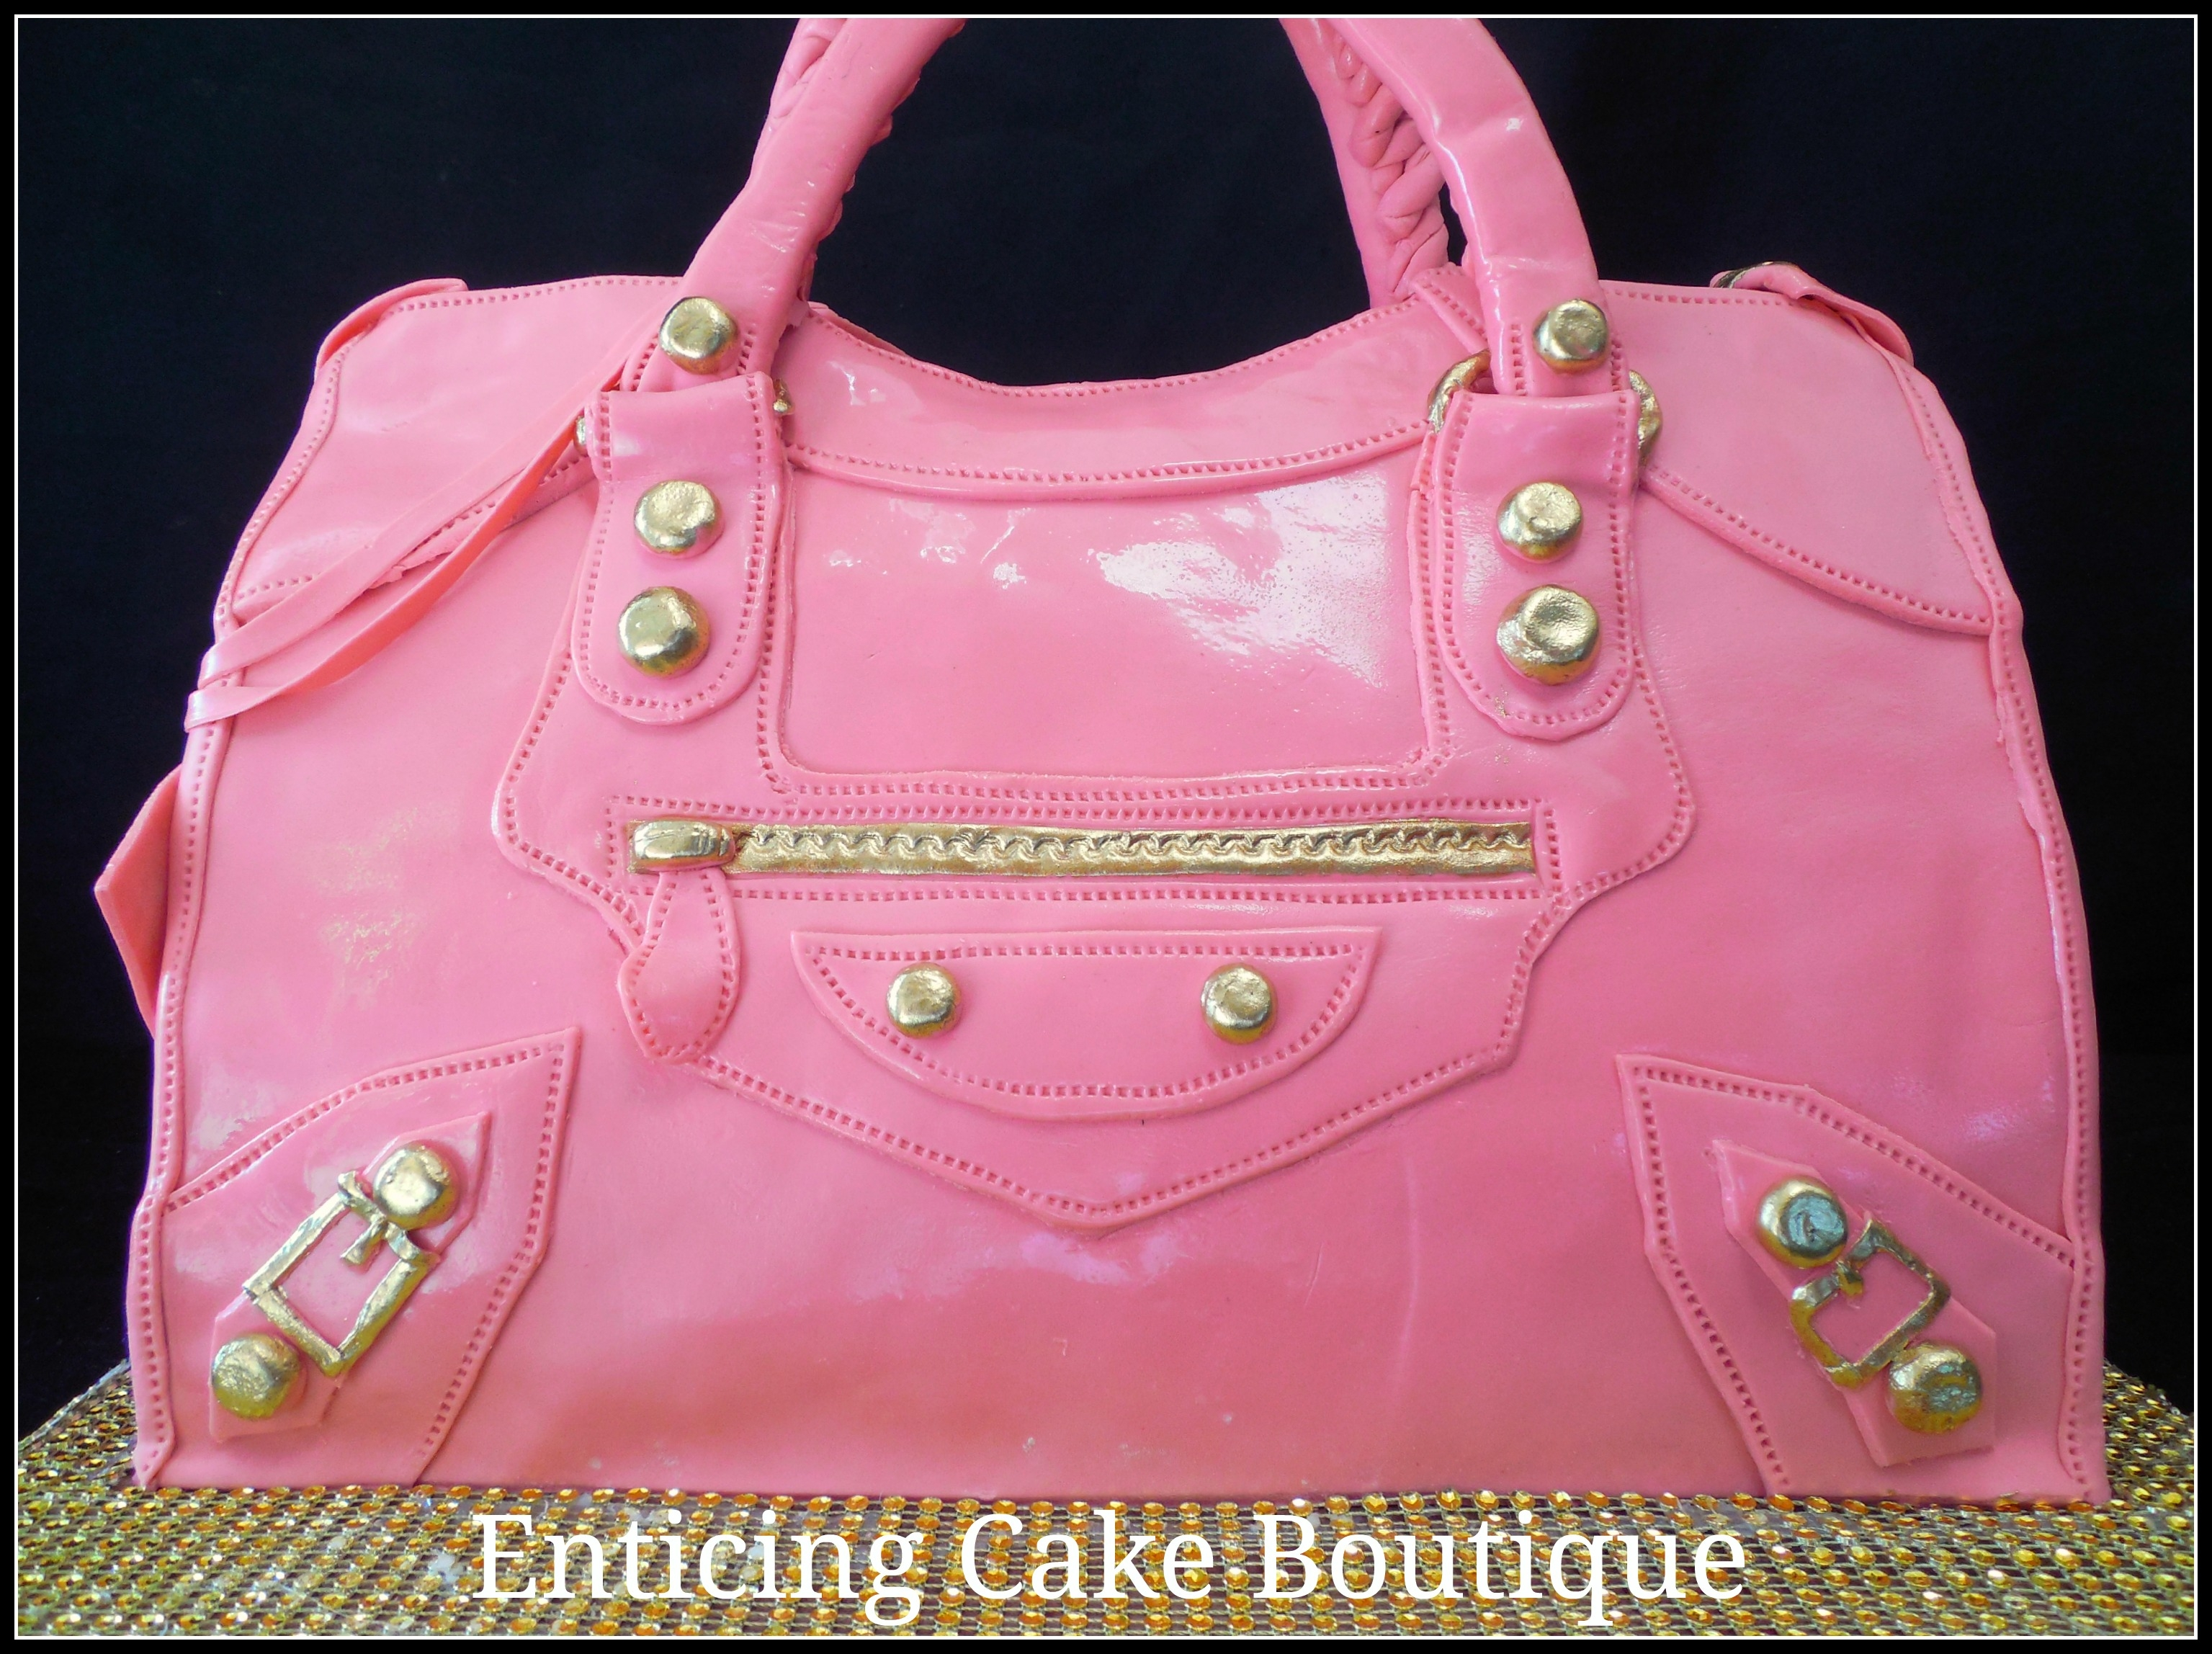 Balenciaga Purse Cake I honestly didn't know this brand until the request to make it came in. They sent me a picture all the way from Brazil and I was ready...